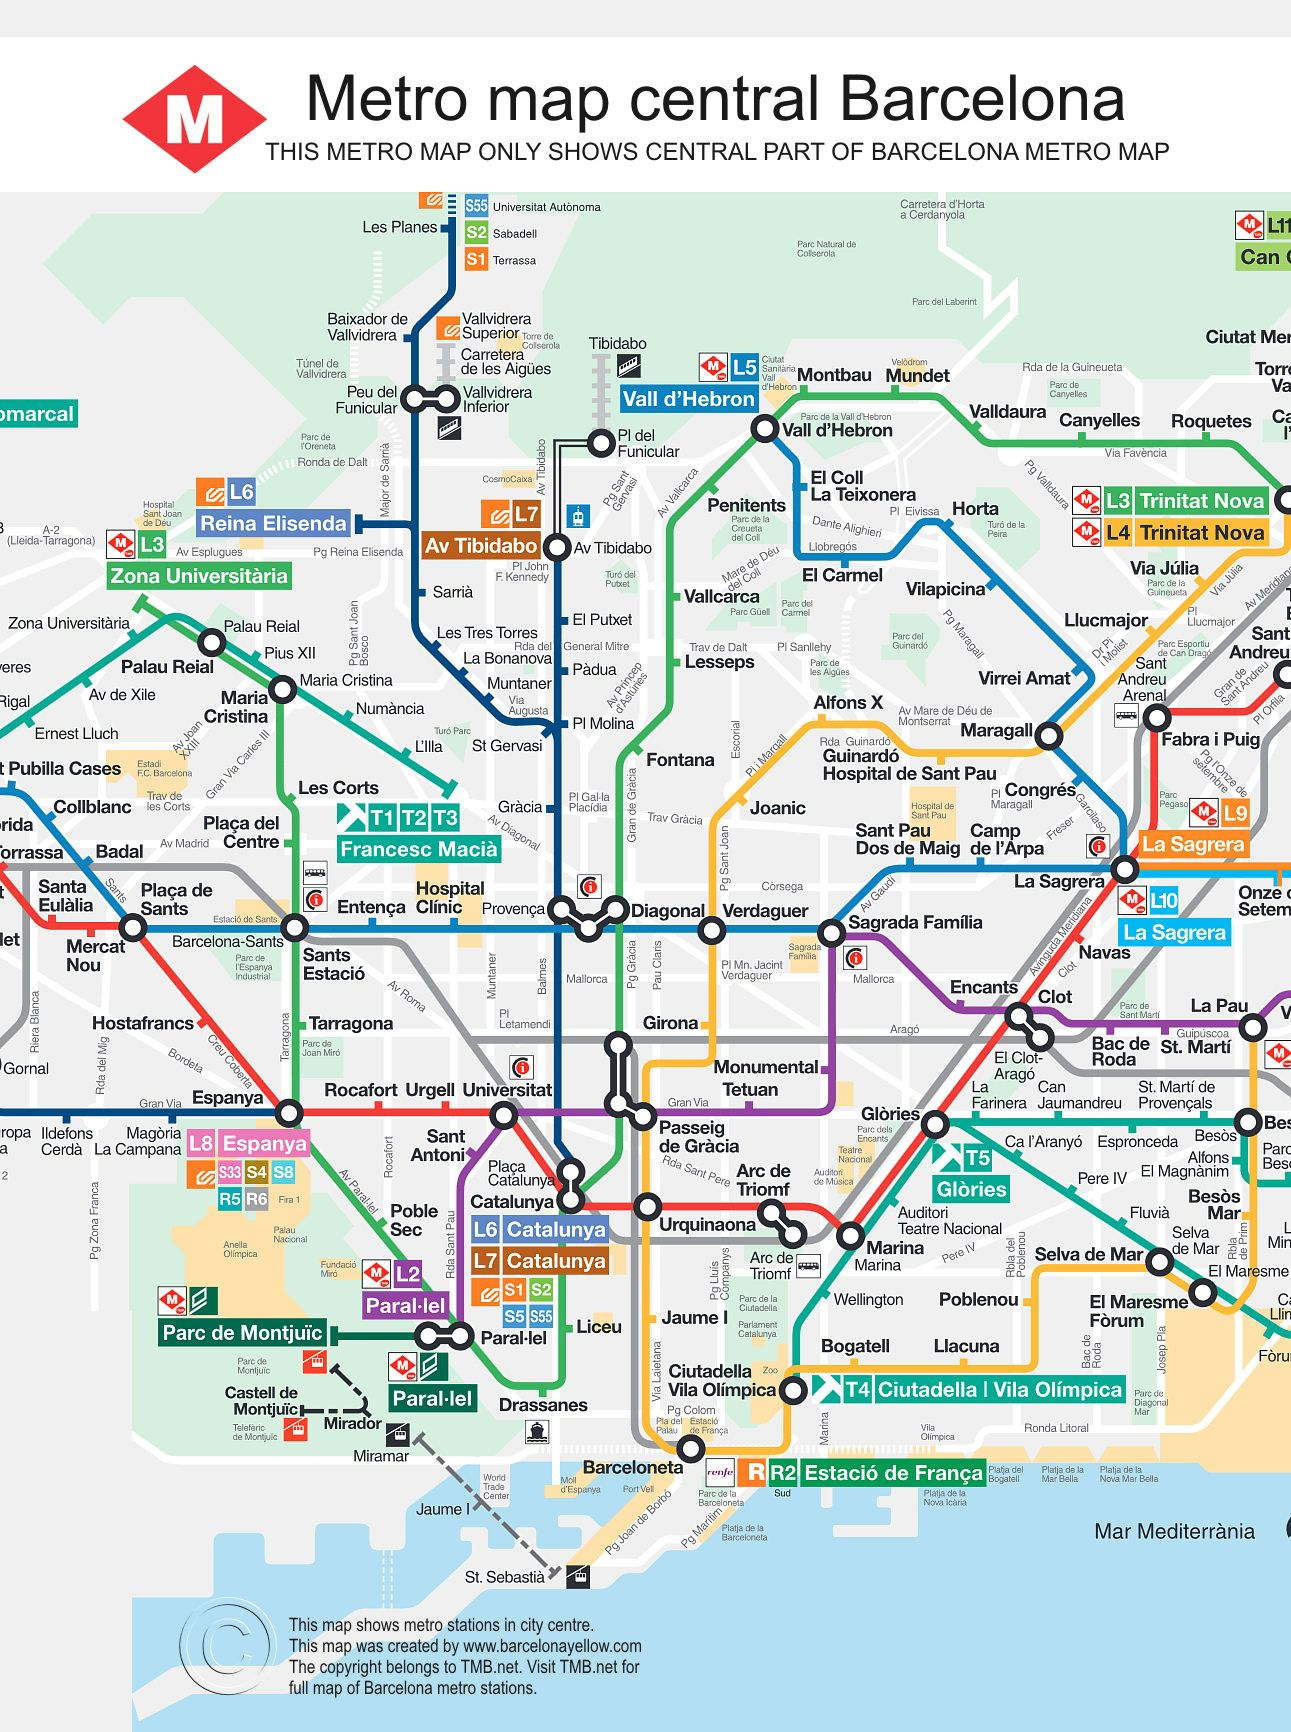 Metro Station Maps With Hotels Yahoo Malaysia Image Search - Japan subway map 2015